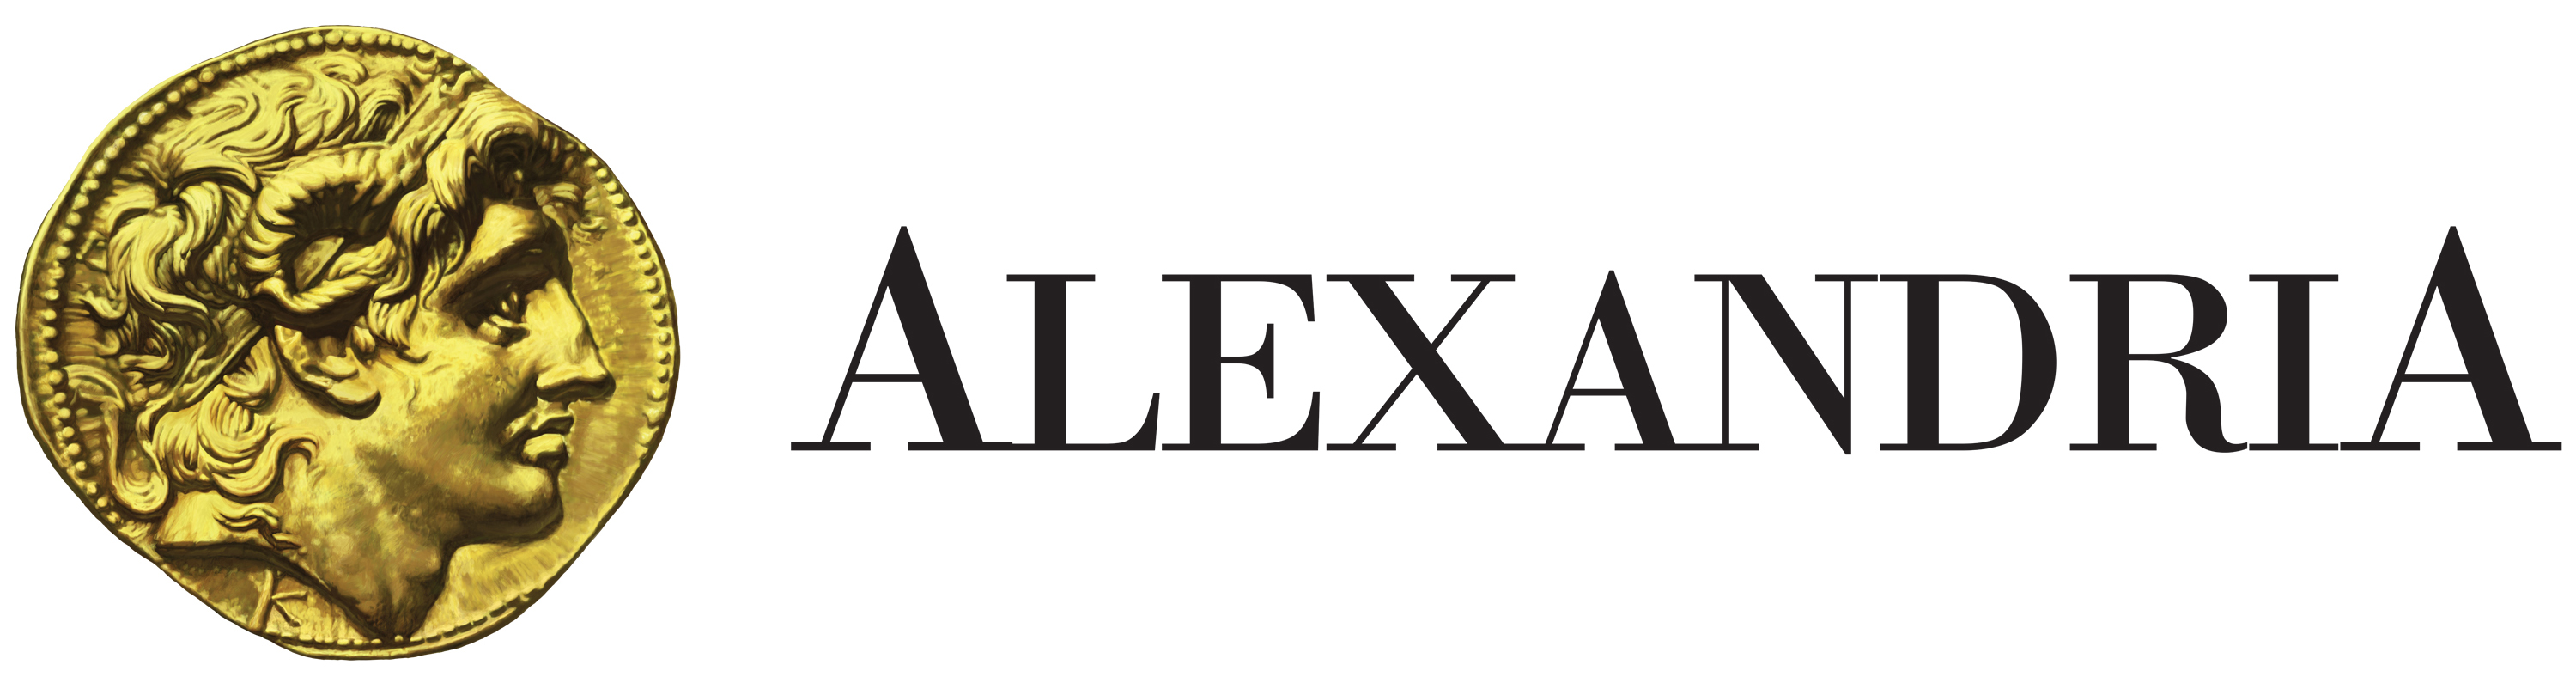 Alexandria Bancorp Limited